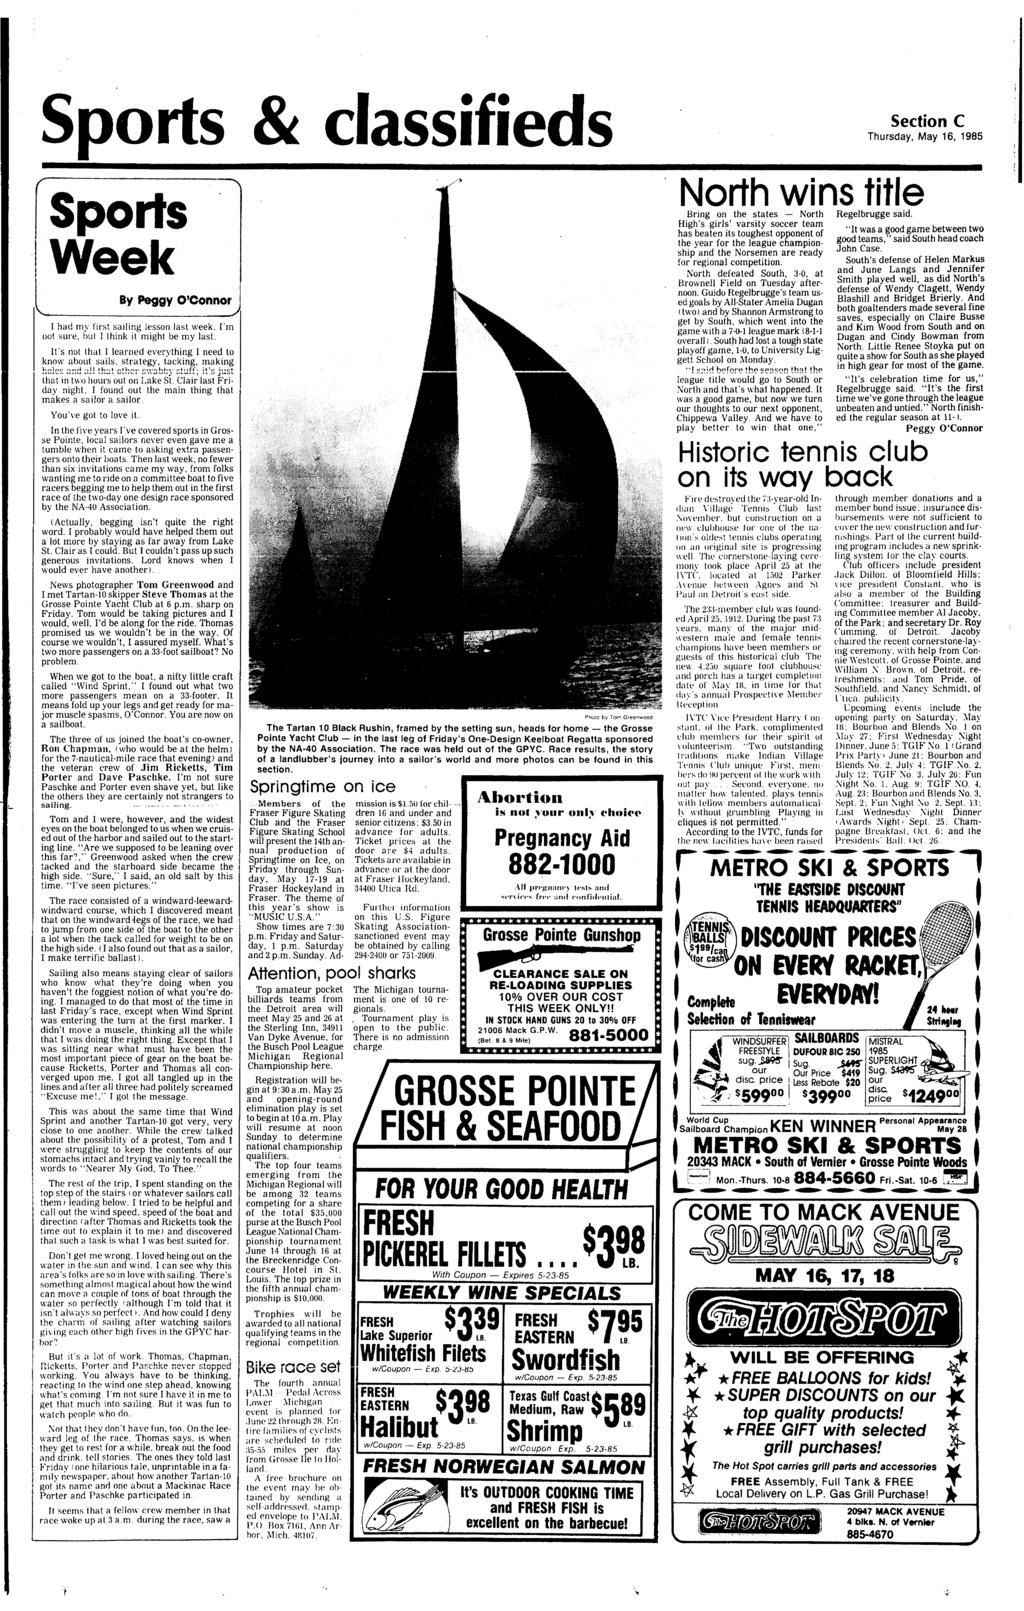 Clues Motive Sought In Arson Deaths Pdf Tuft Micro Misty 360 Sports Classifieds Section C Thursday May 16 1985 Week Had 01